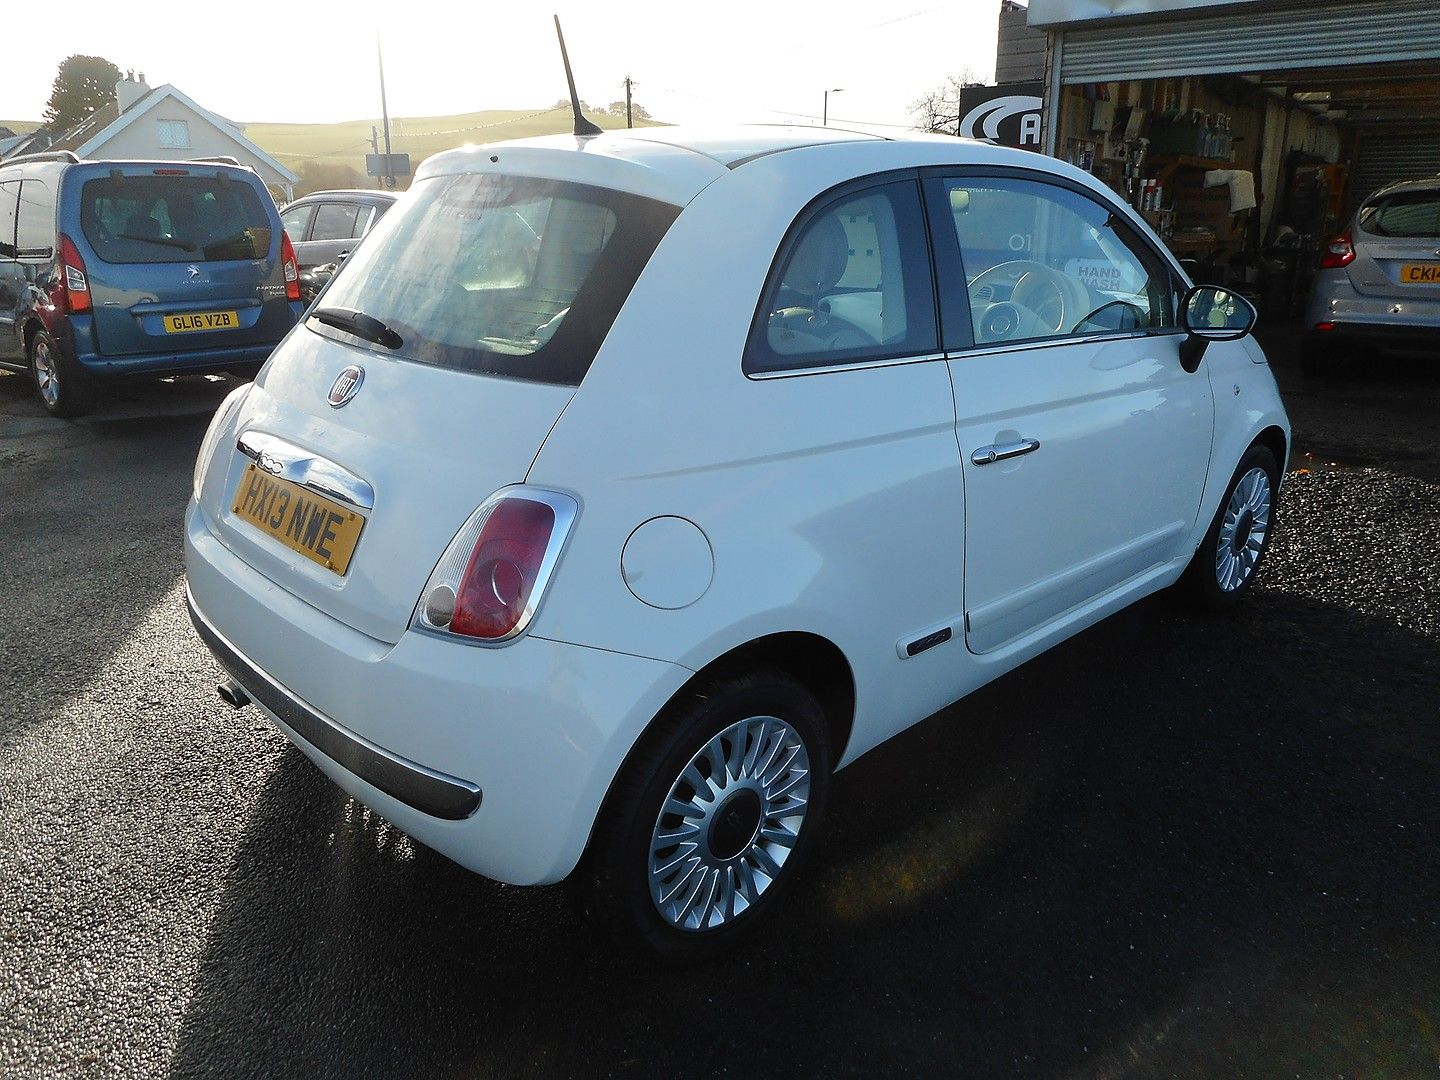 FIAT 500 1.2i Lounge S/S automatic (2013) - Picture 3